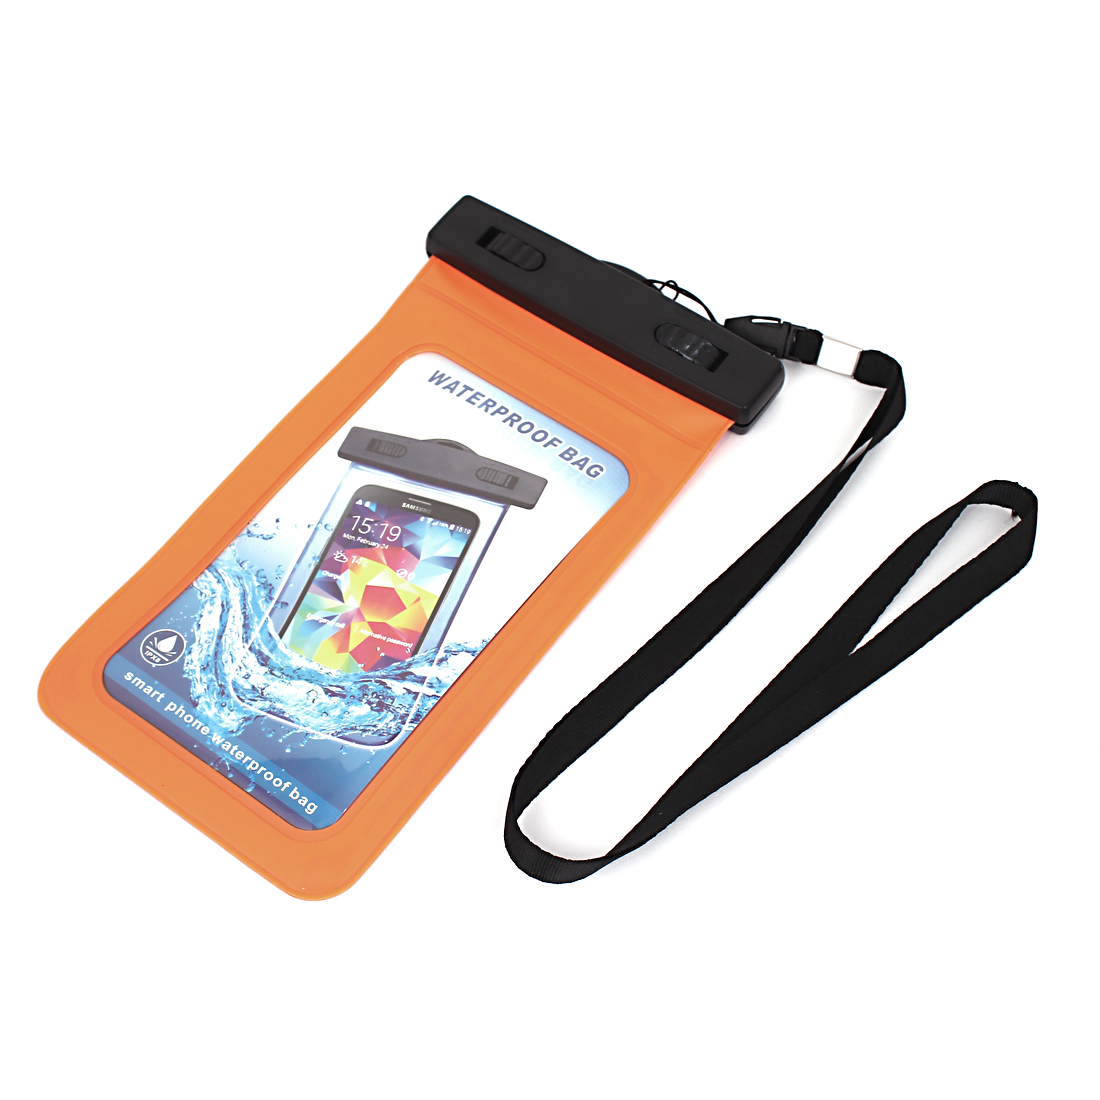 "Waterproof Bag Holder Pouch Orange for 5.5"" Mobile Phone w Neck Strap"